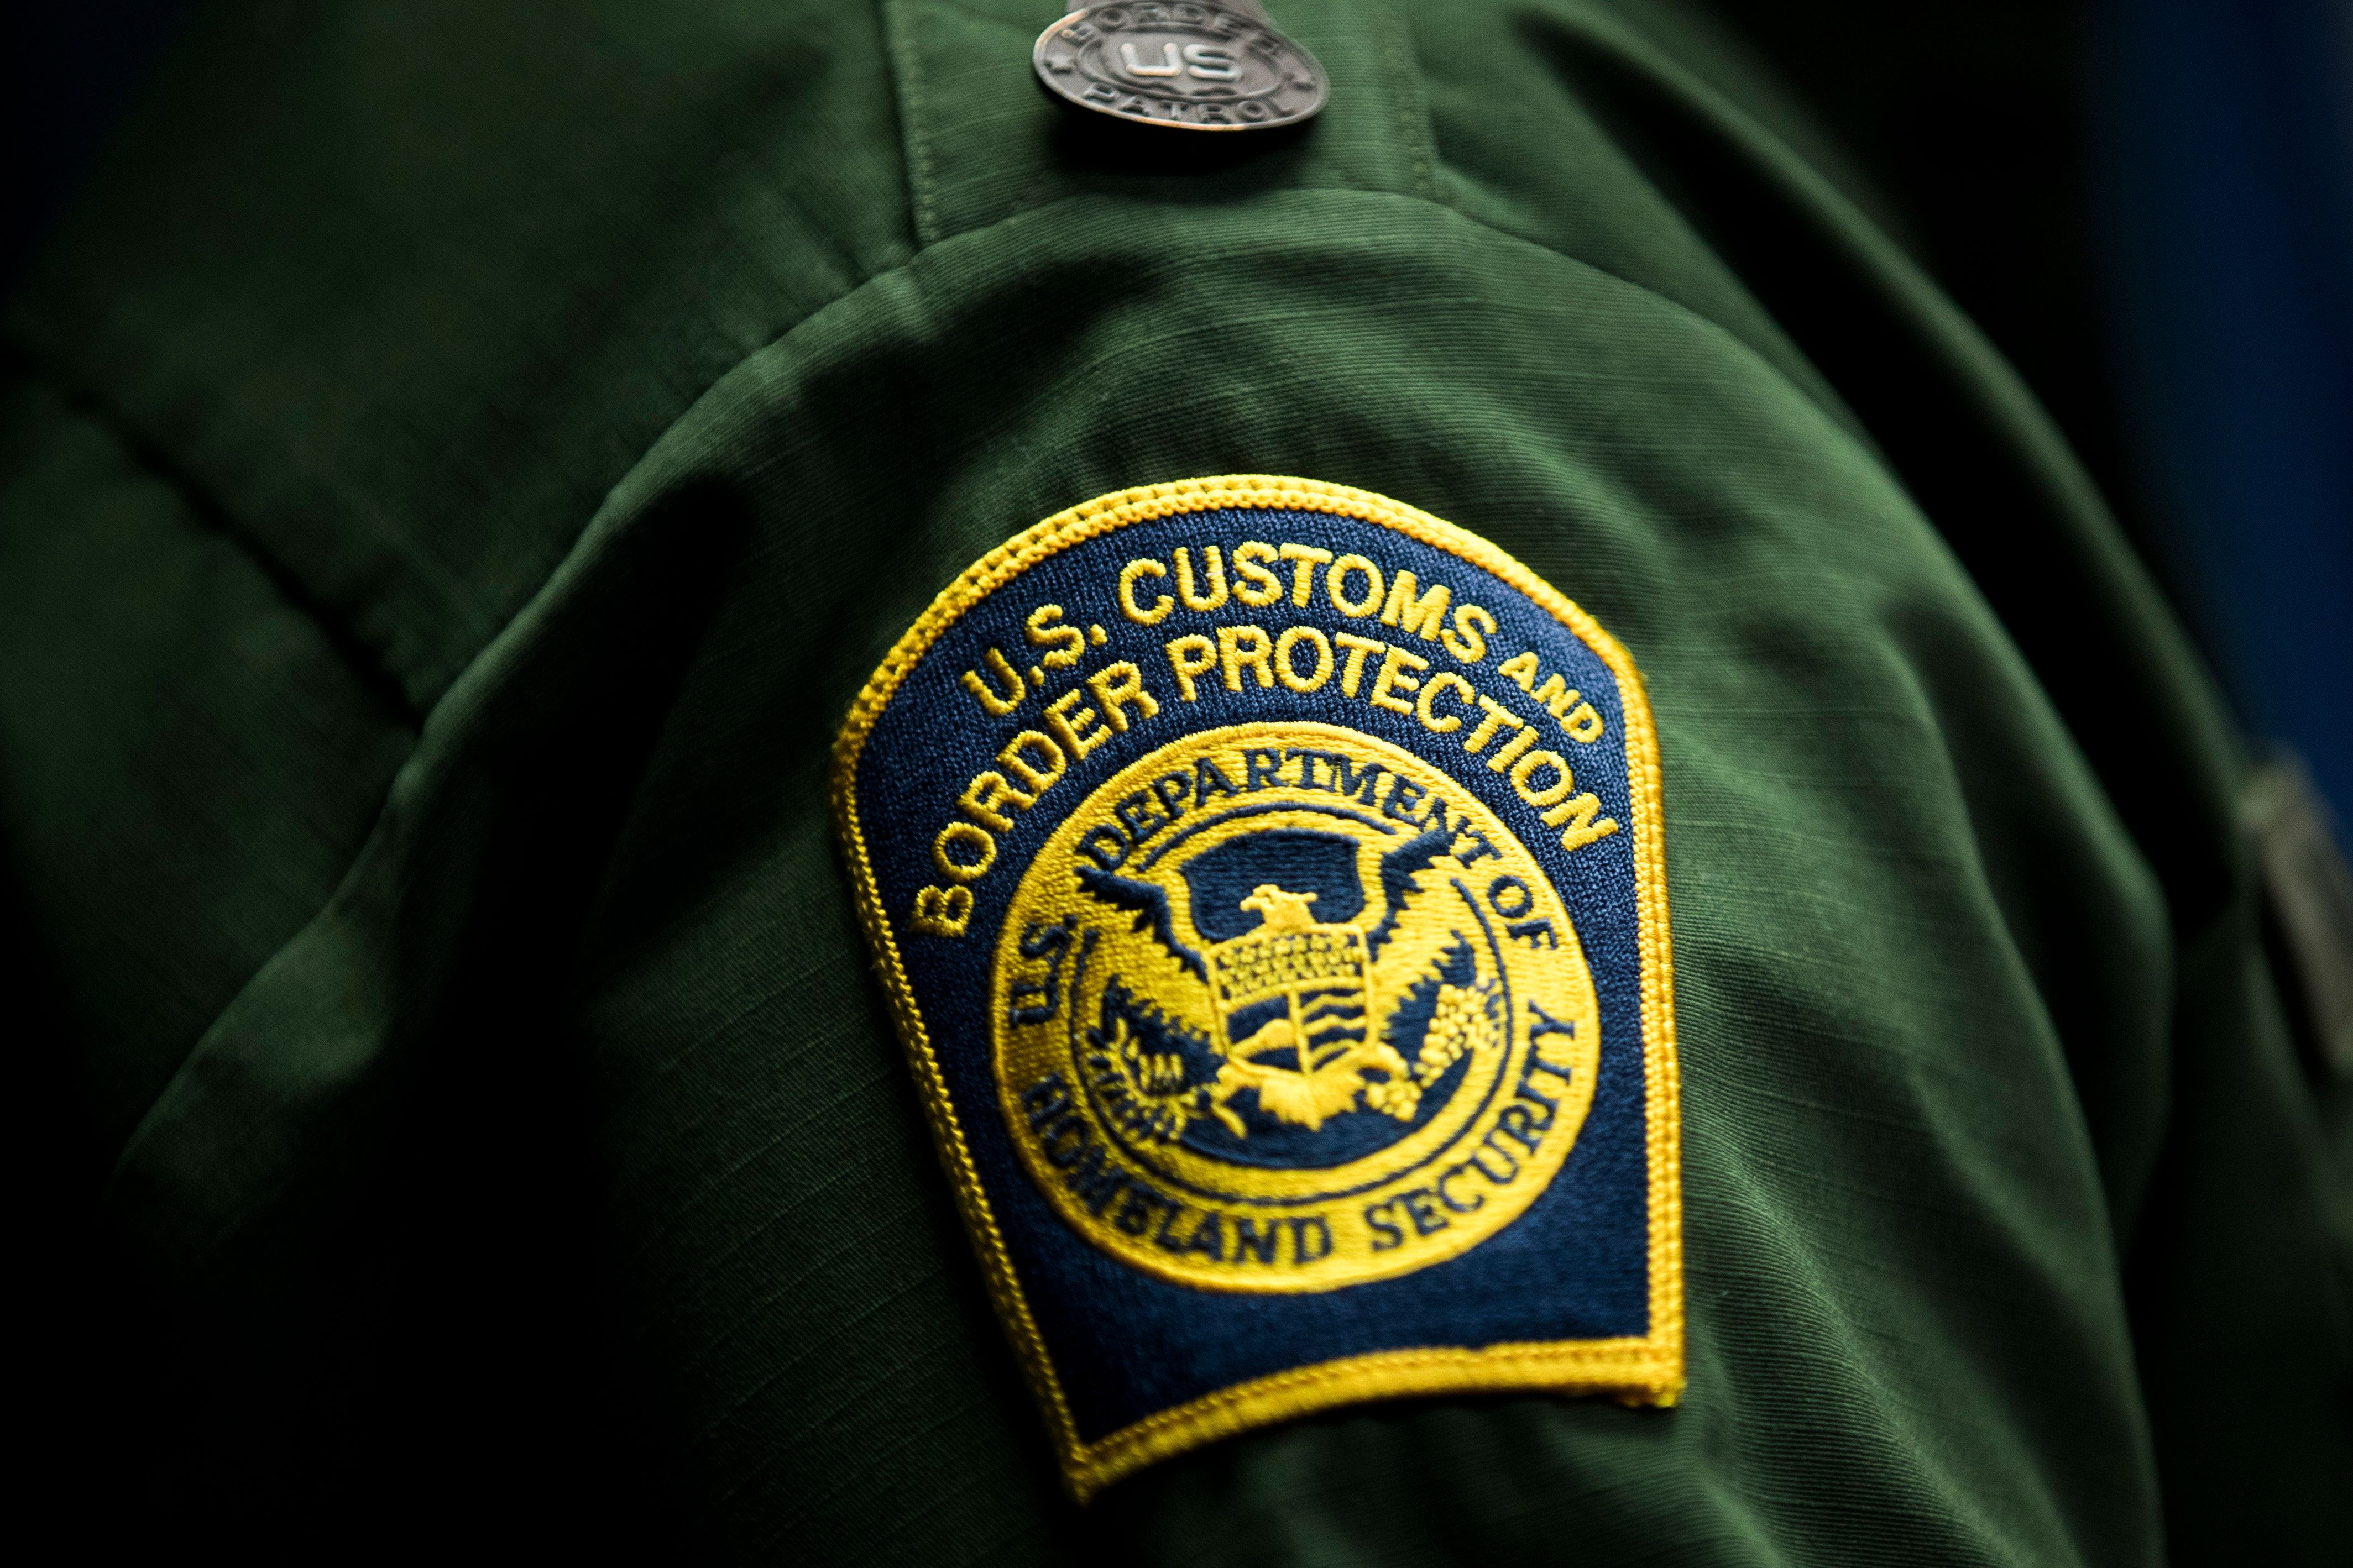 WASHINGTON, DC - DECEMBER 5: A  U.S. Customs and Border Protection patch is displayed on the sleeve of Ronald D. Vitiello, Acting Deputy Commissioner of U.S. Customs and Border Protection (CBP), as he speaks during a Department of Homeland Security press conference to announce end-of-year numbers regarding immigration enforcement, border security and national security, December 5, 2017 in Washington, DC. (Photo by Drew Angerer/Getty Images)